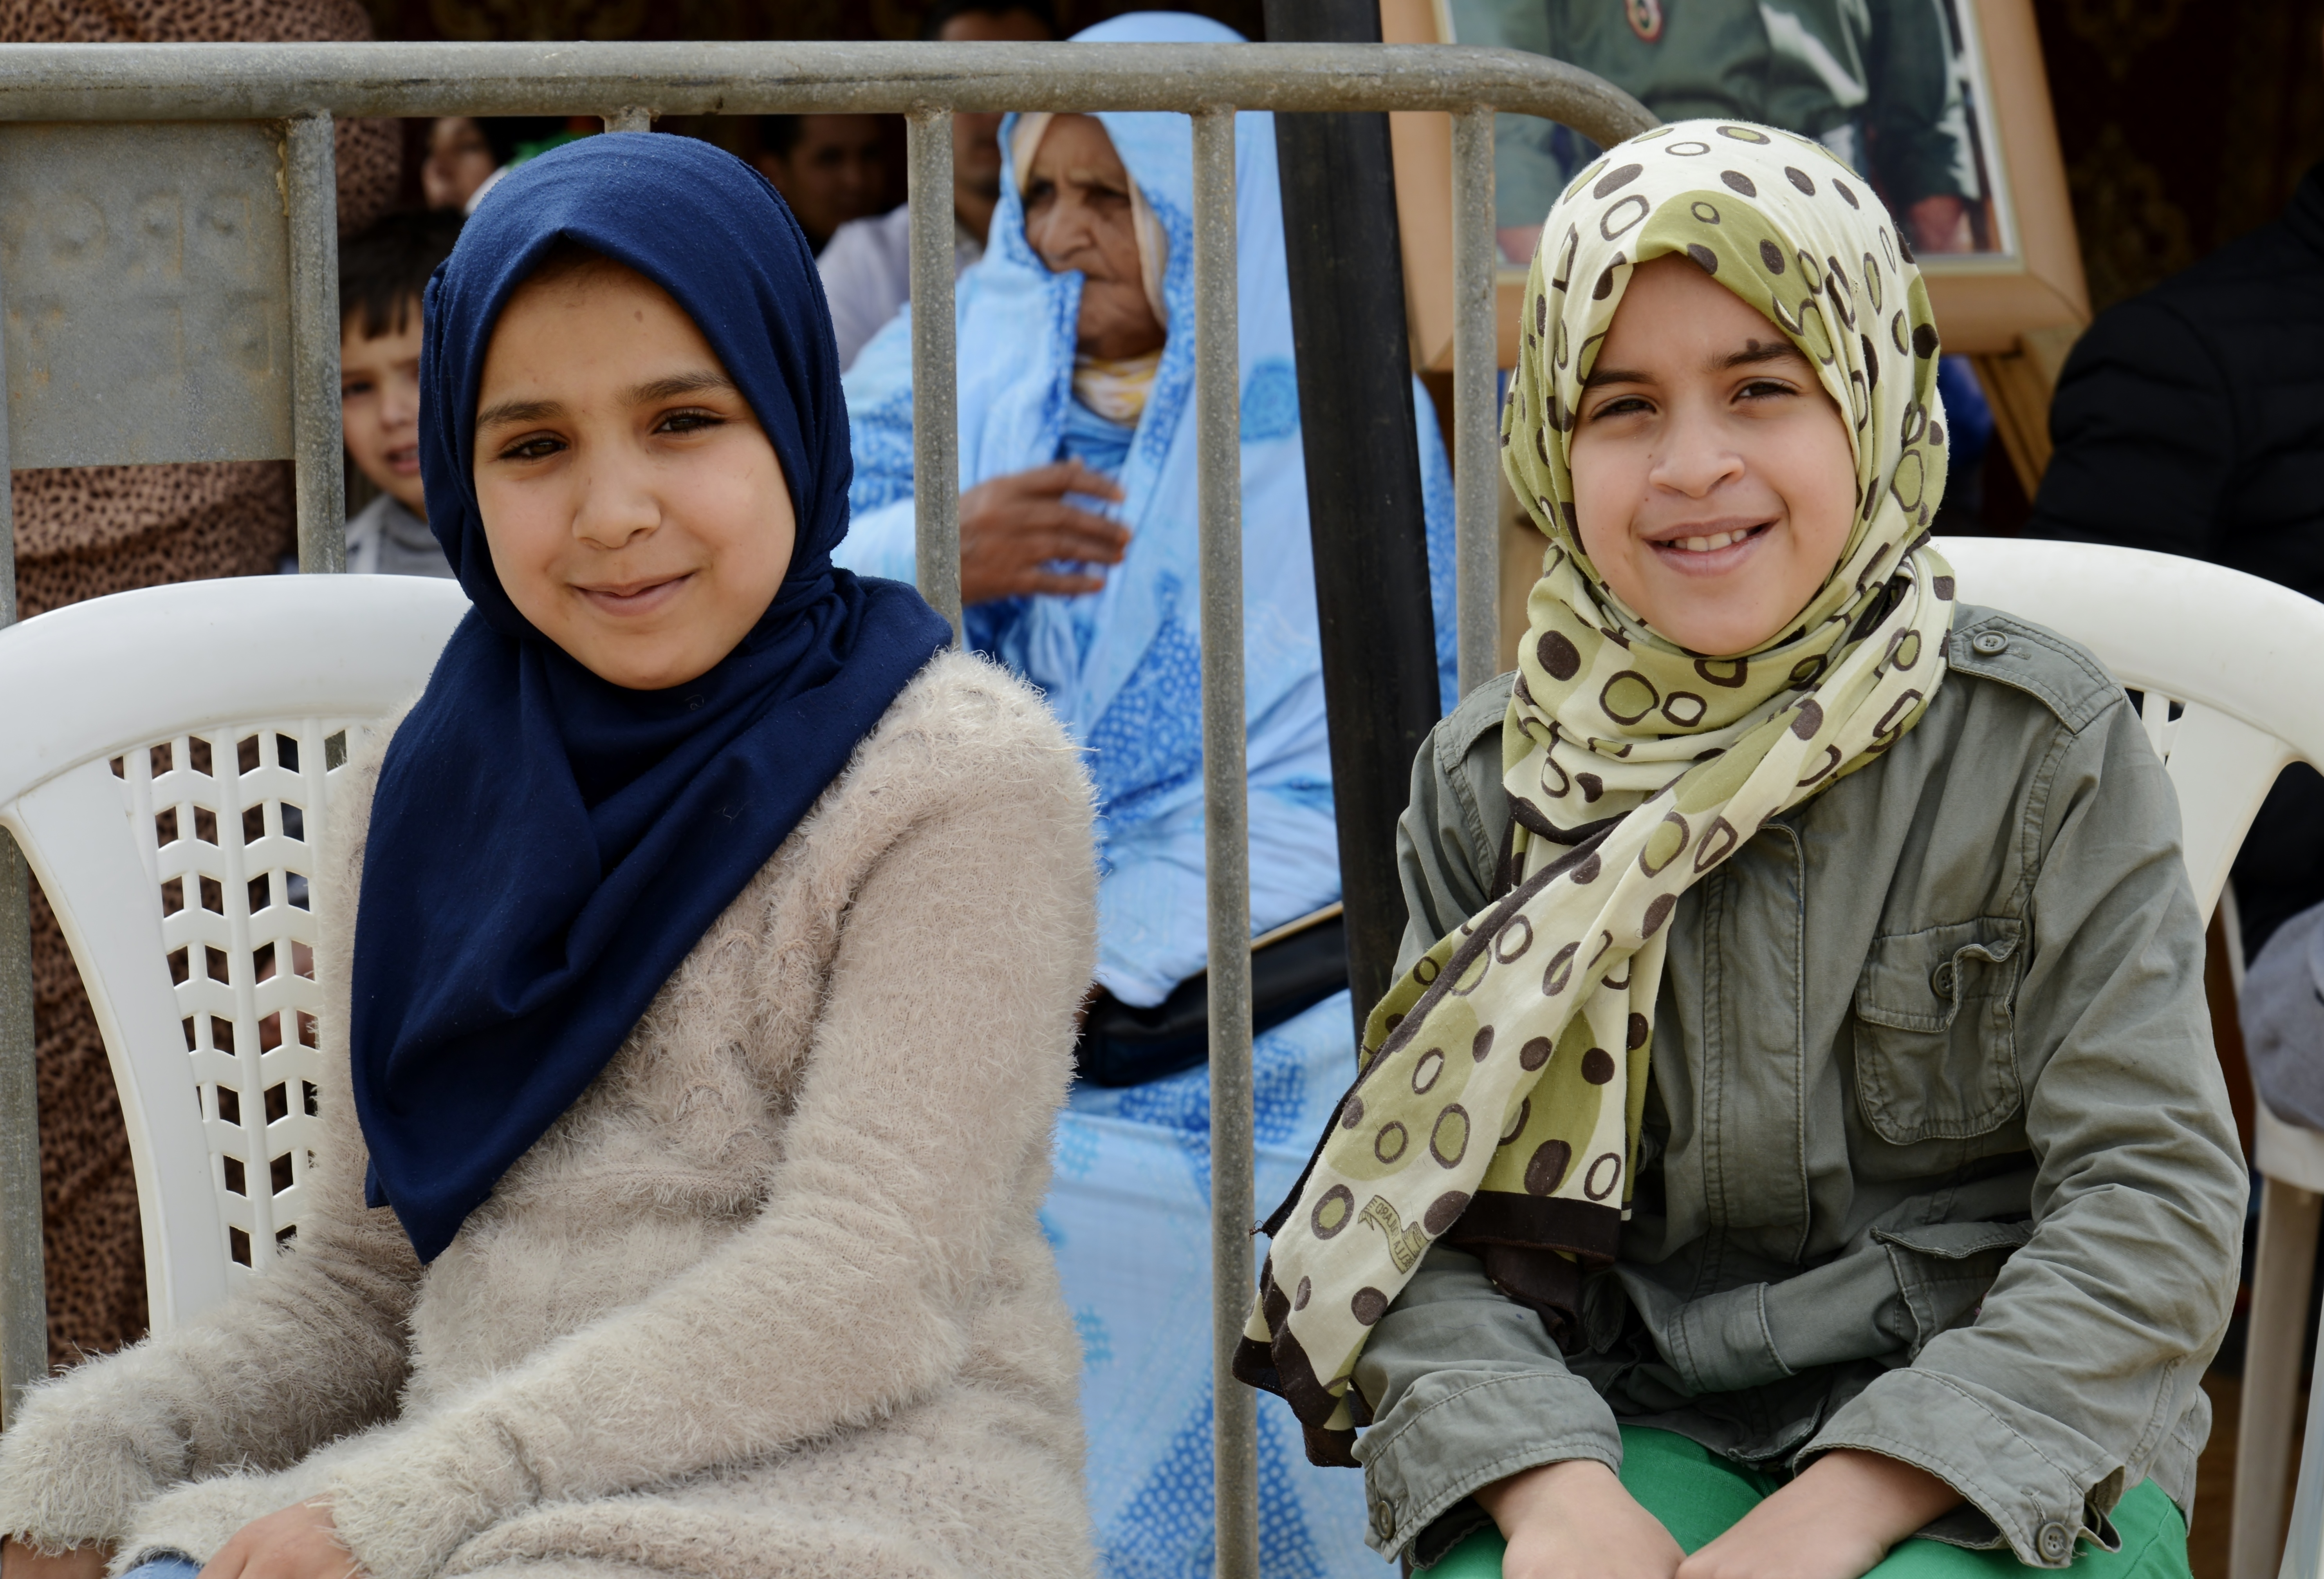 Two girls waiting for dental services during the Humanitarian Civic Assistance component of Exercise African Lion 2018 in Bounaamane, Morocco, April 24, 2018.  Exercise African Lion 2018 is a Chairman of the Joint Chiefs of Staff-sponsored, U.S. African Command-scheduled, U.S. Marine Corps Forces Europe and Africa-led, joint and combined exercise conducted in the Kingdom of Morocco. African Lion offers an opportunity to improve interoperability and cooperation while demonstrating the strong military bond that exists between the participating nations. (U.S. Army National Guard photo by Maj. Samantha Madsen)